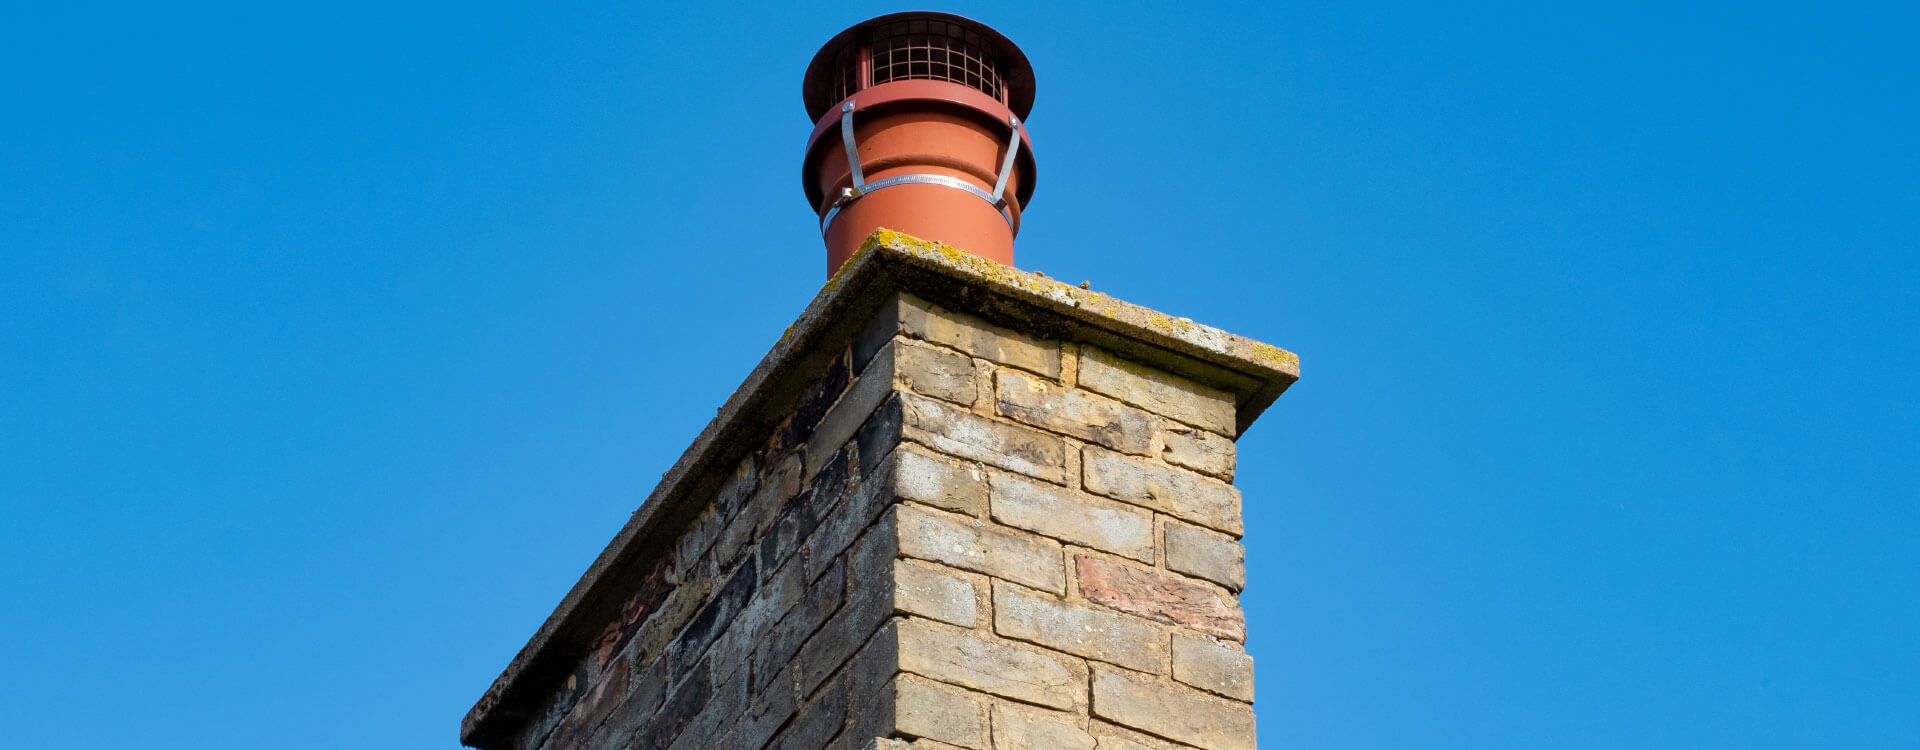 Chimney Repair Services in Esher, Cobham and Guildford